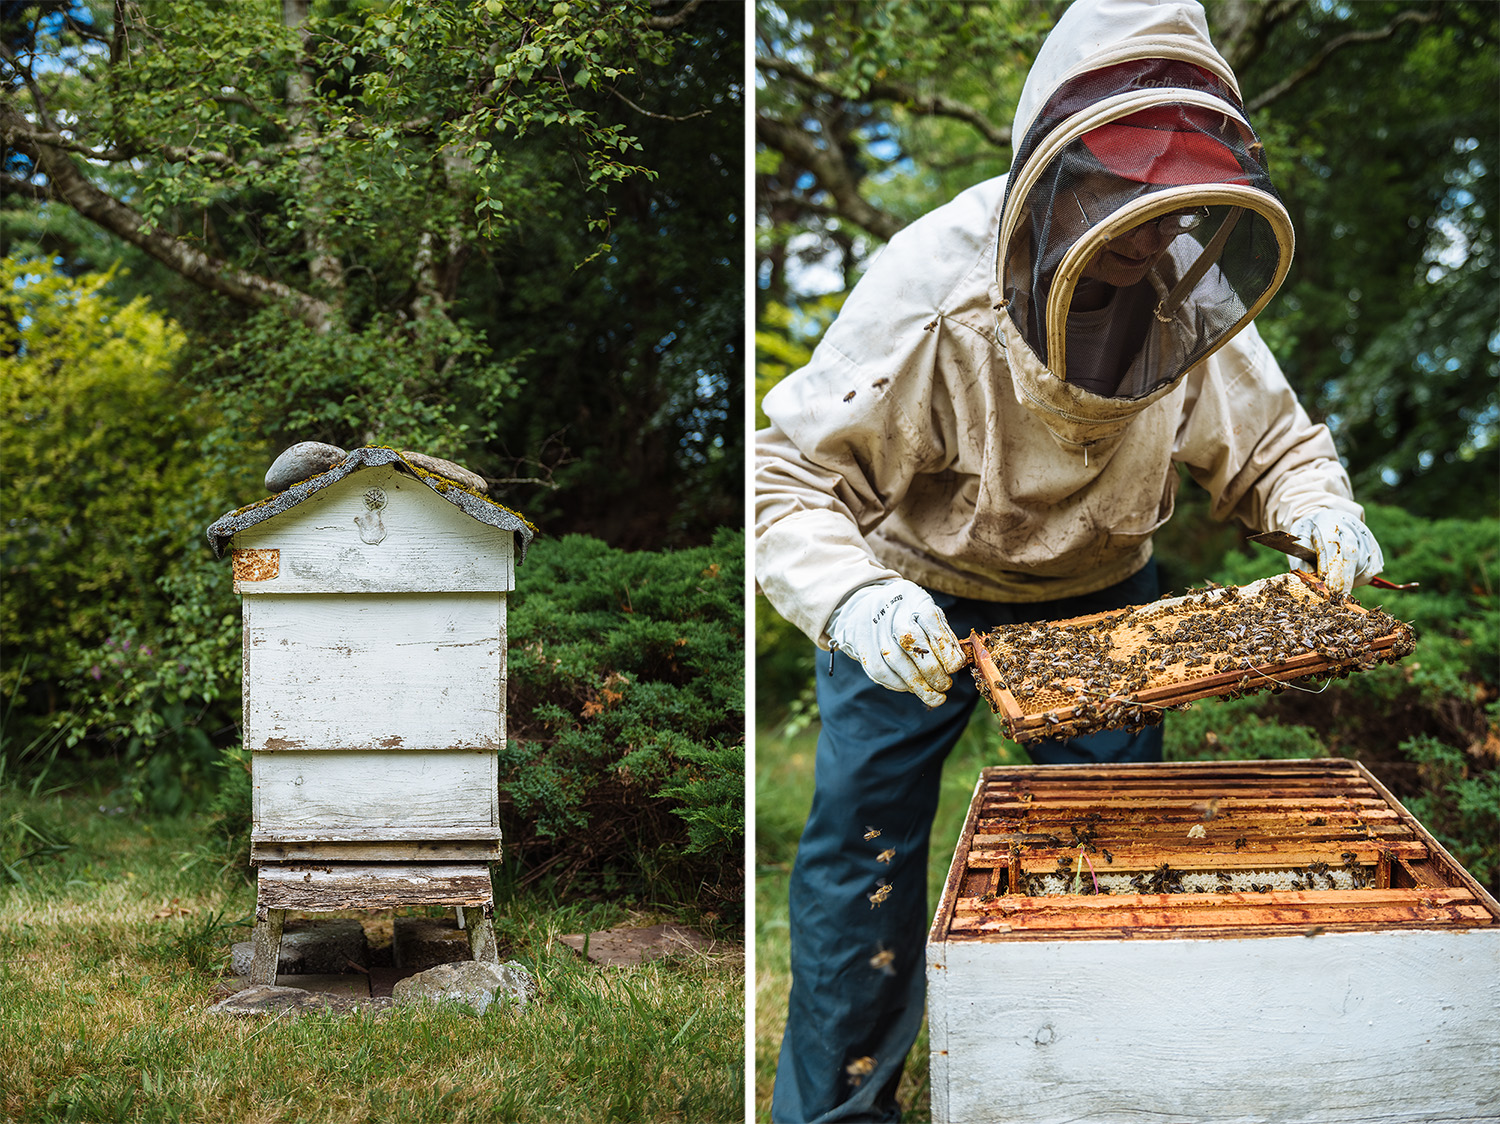 editorial-photography-beekeeping-bees-hive.jpg